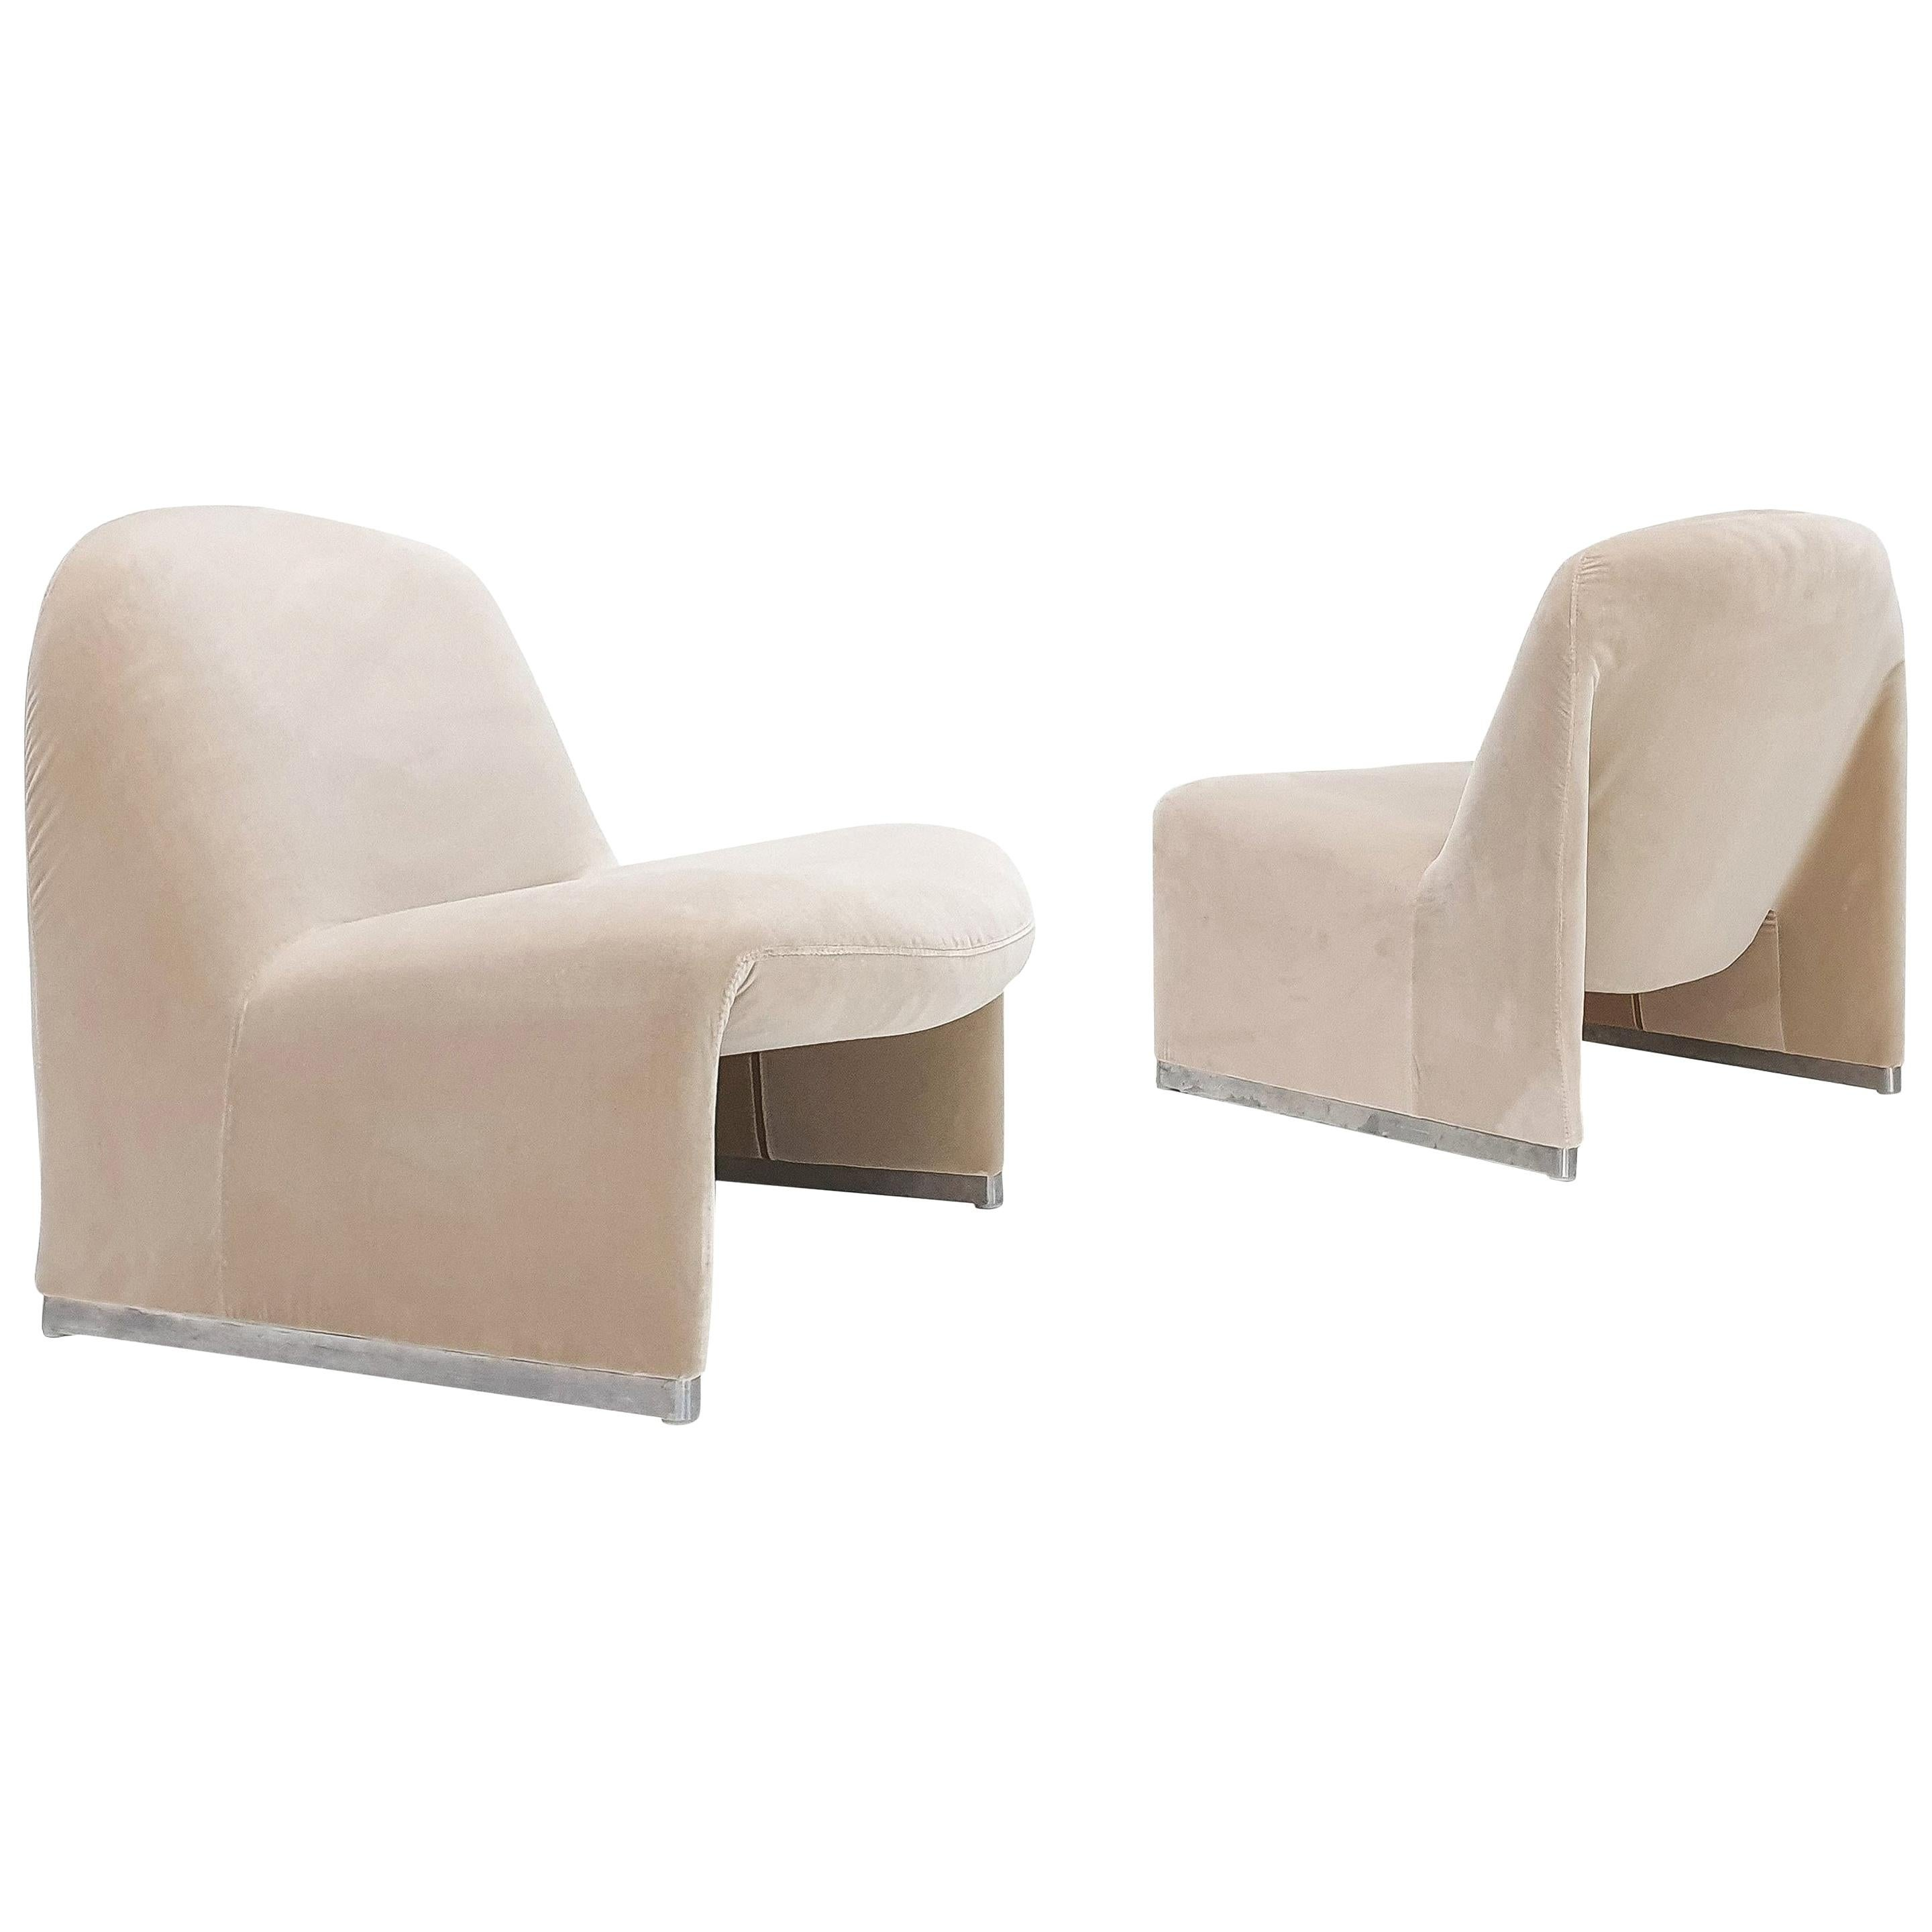 Alky Chair